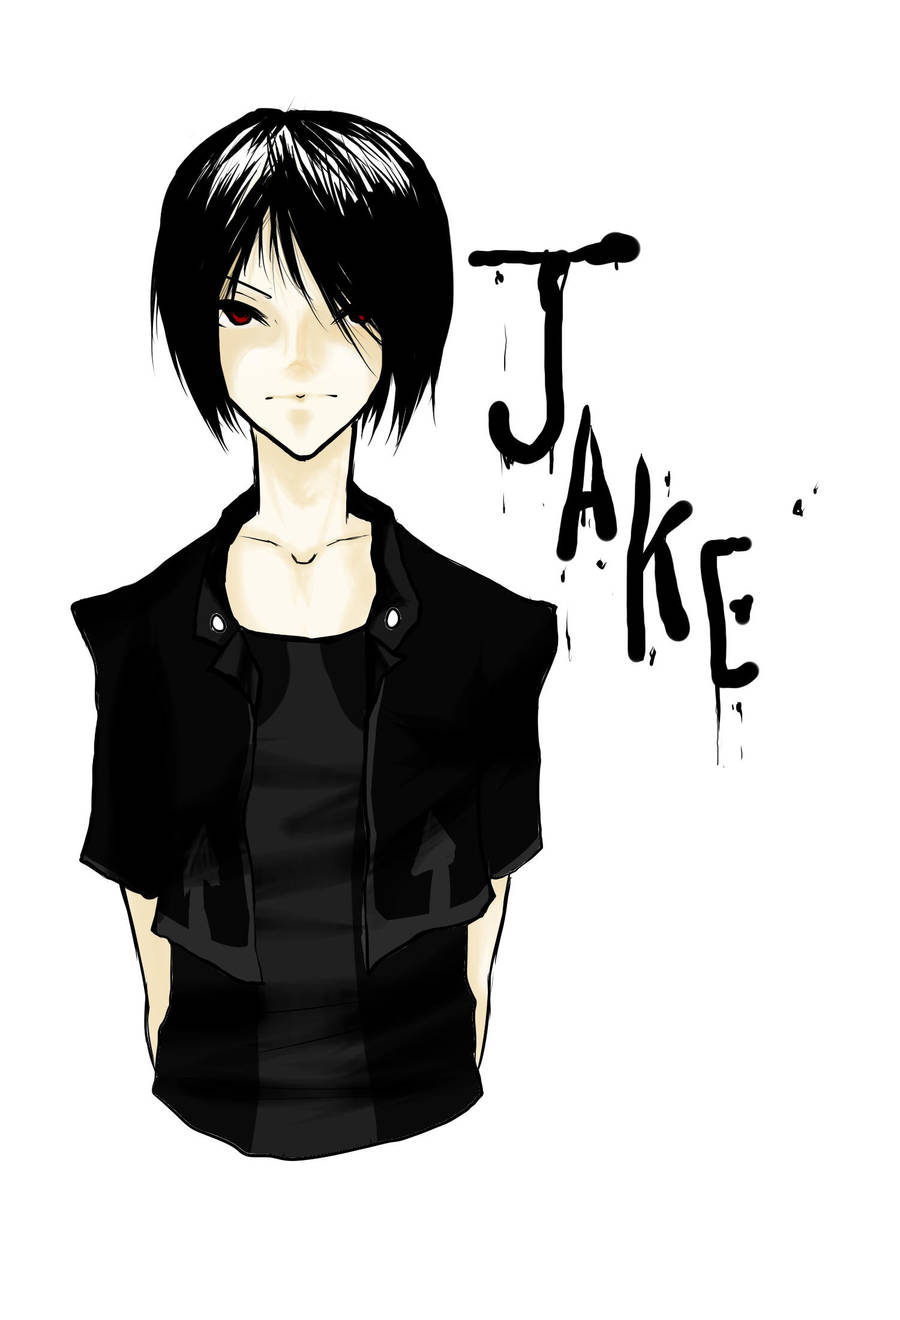 Jake by Haruki-A